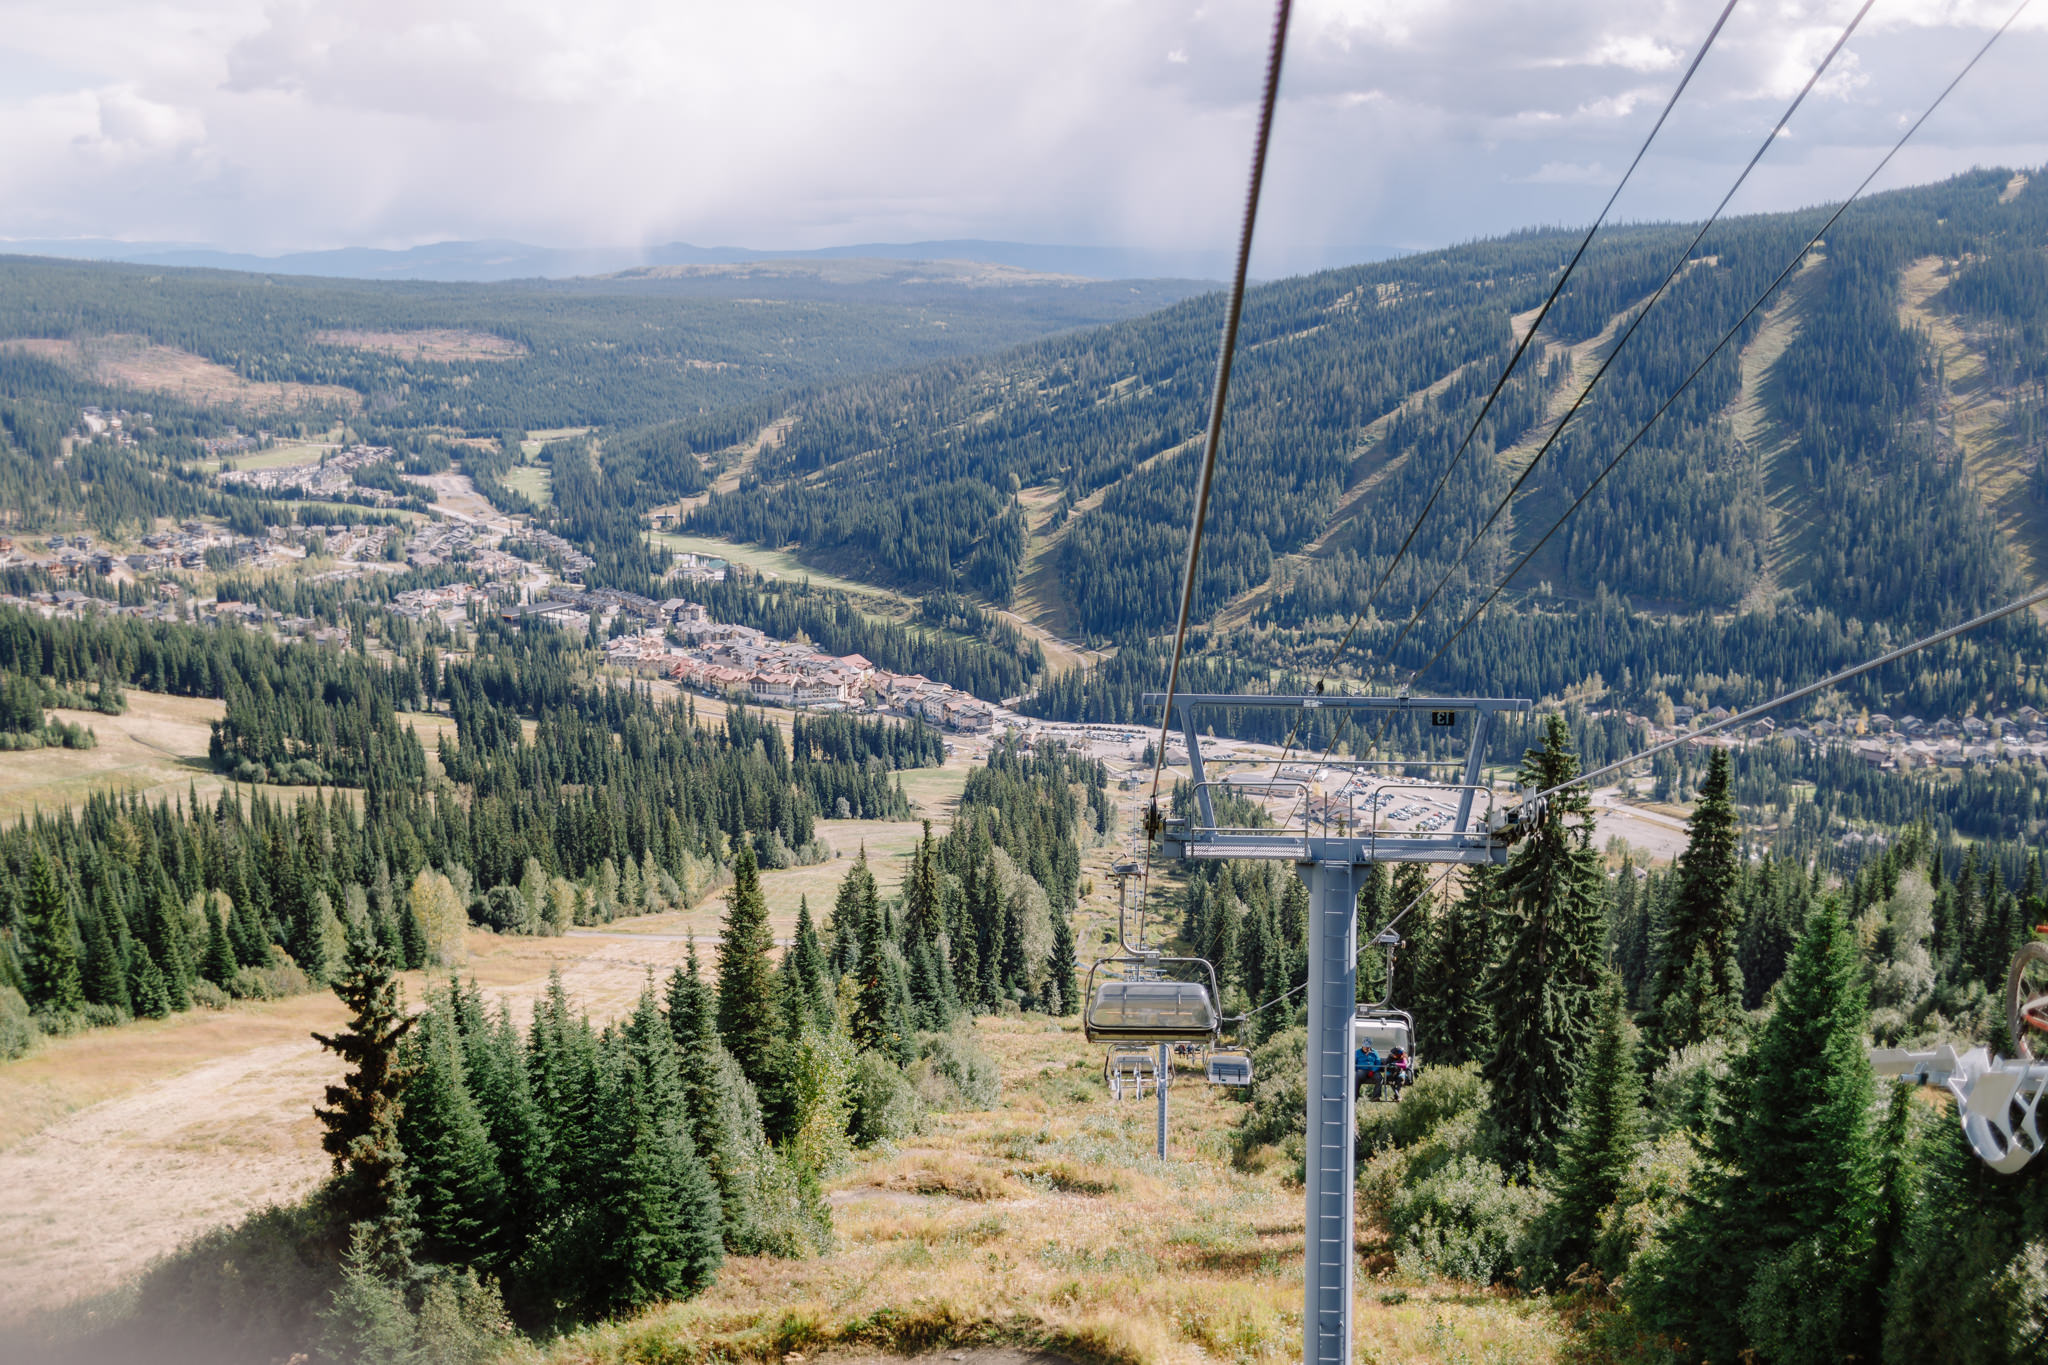 View of village from ski lift